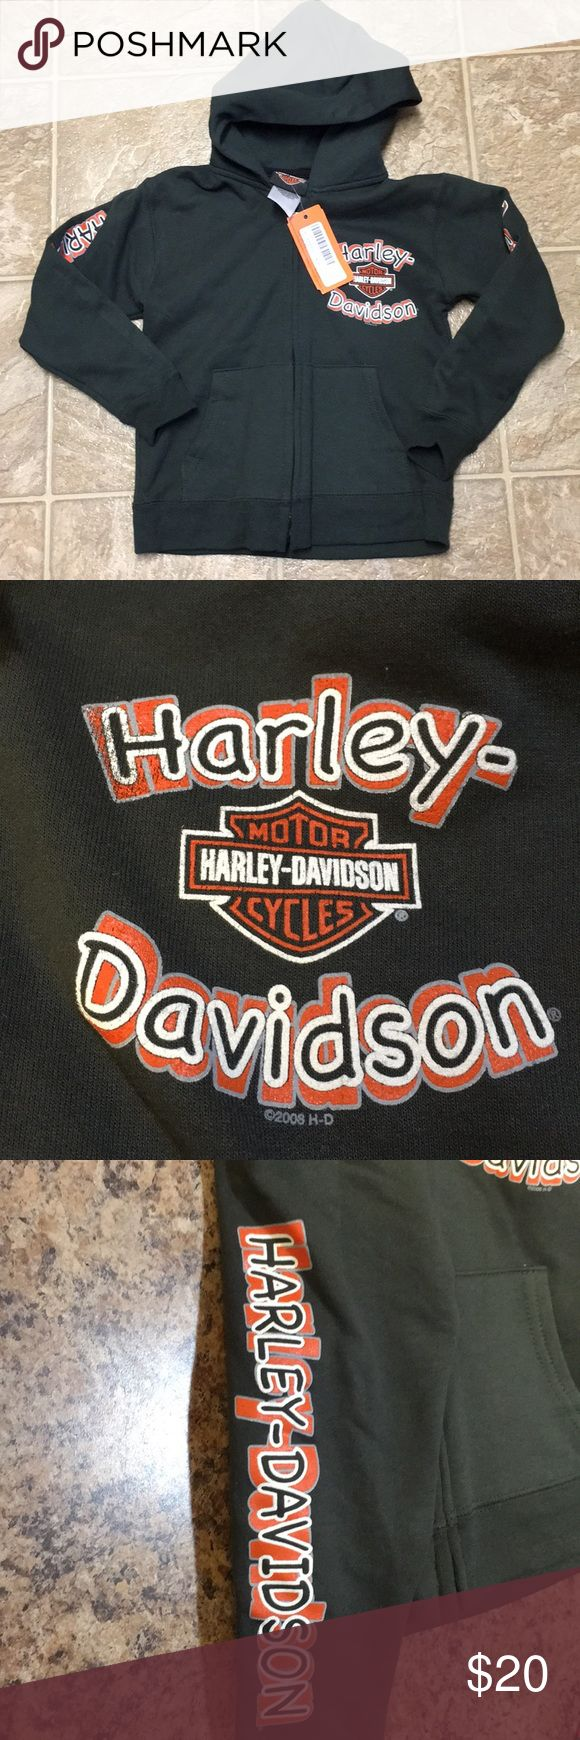 NWT Harley-Davidson Sweatshirt Gray full zip sweatshirt with graphic designs on chest and both arms. New with tags Harley-Davidson Shirts & Tops Sweatshirts & Hoodies